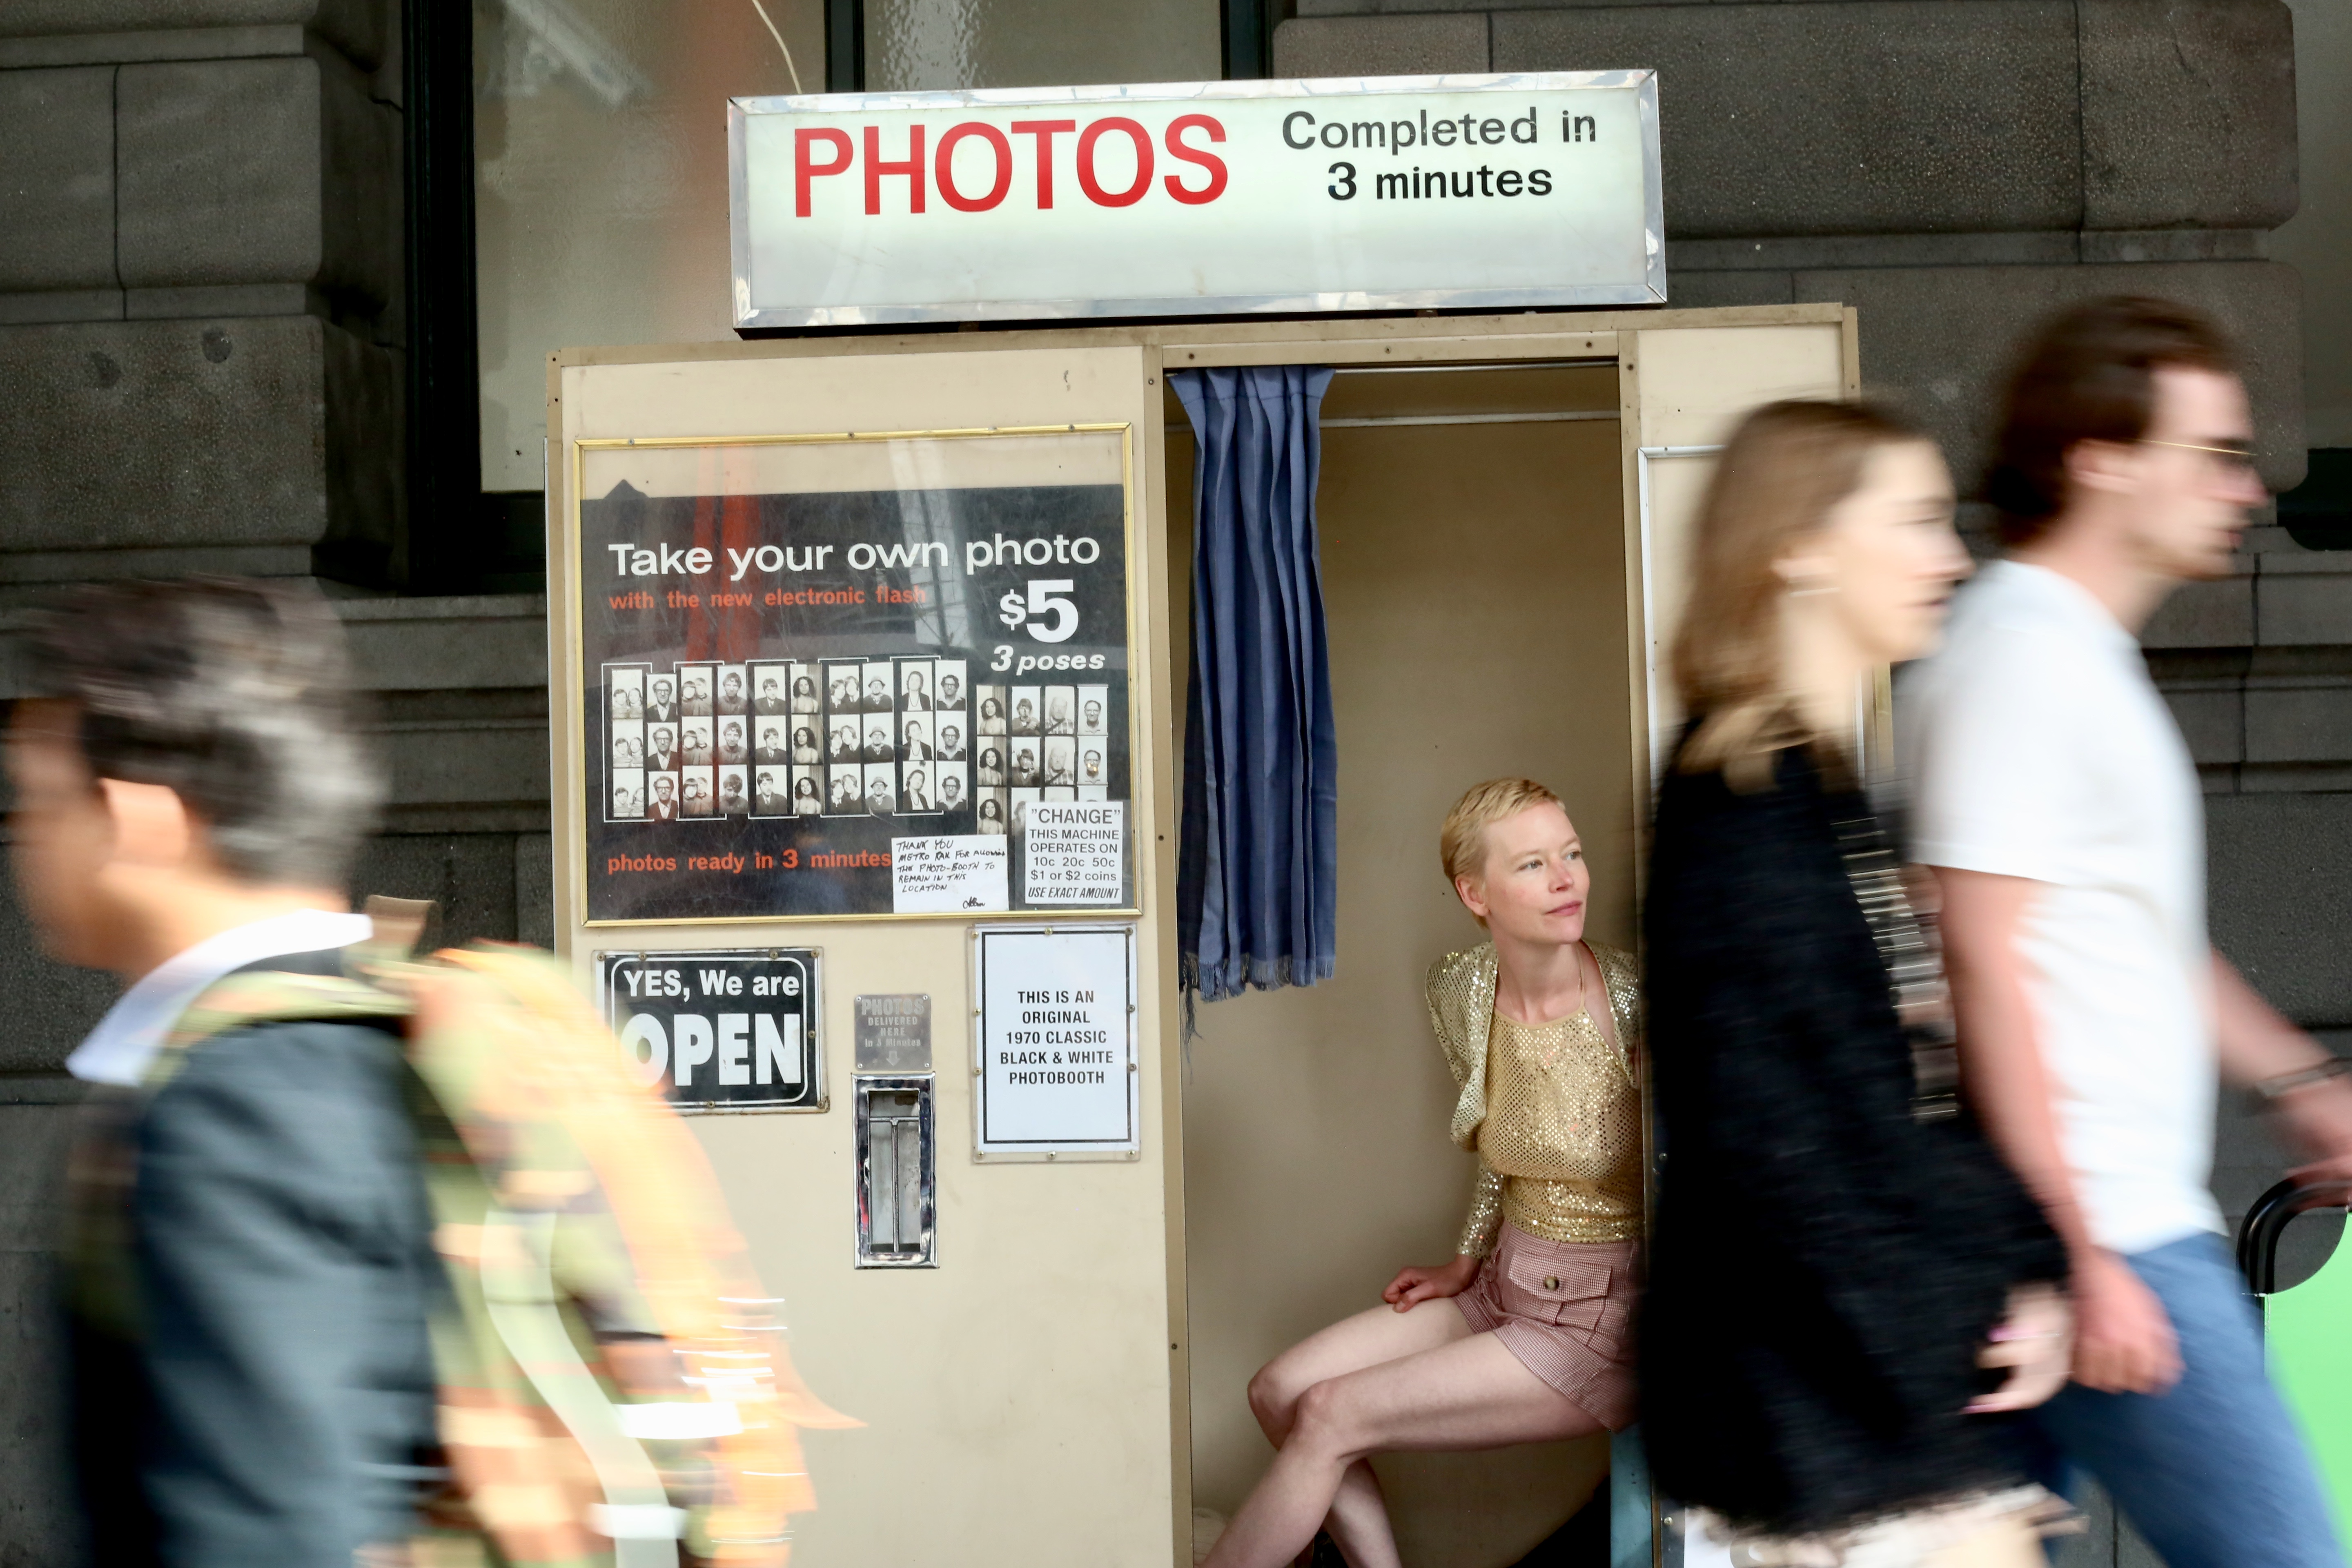 Capture your roaming - Melbourne's oldest photo booth